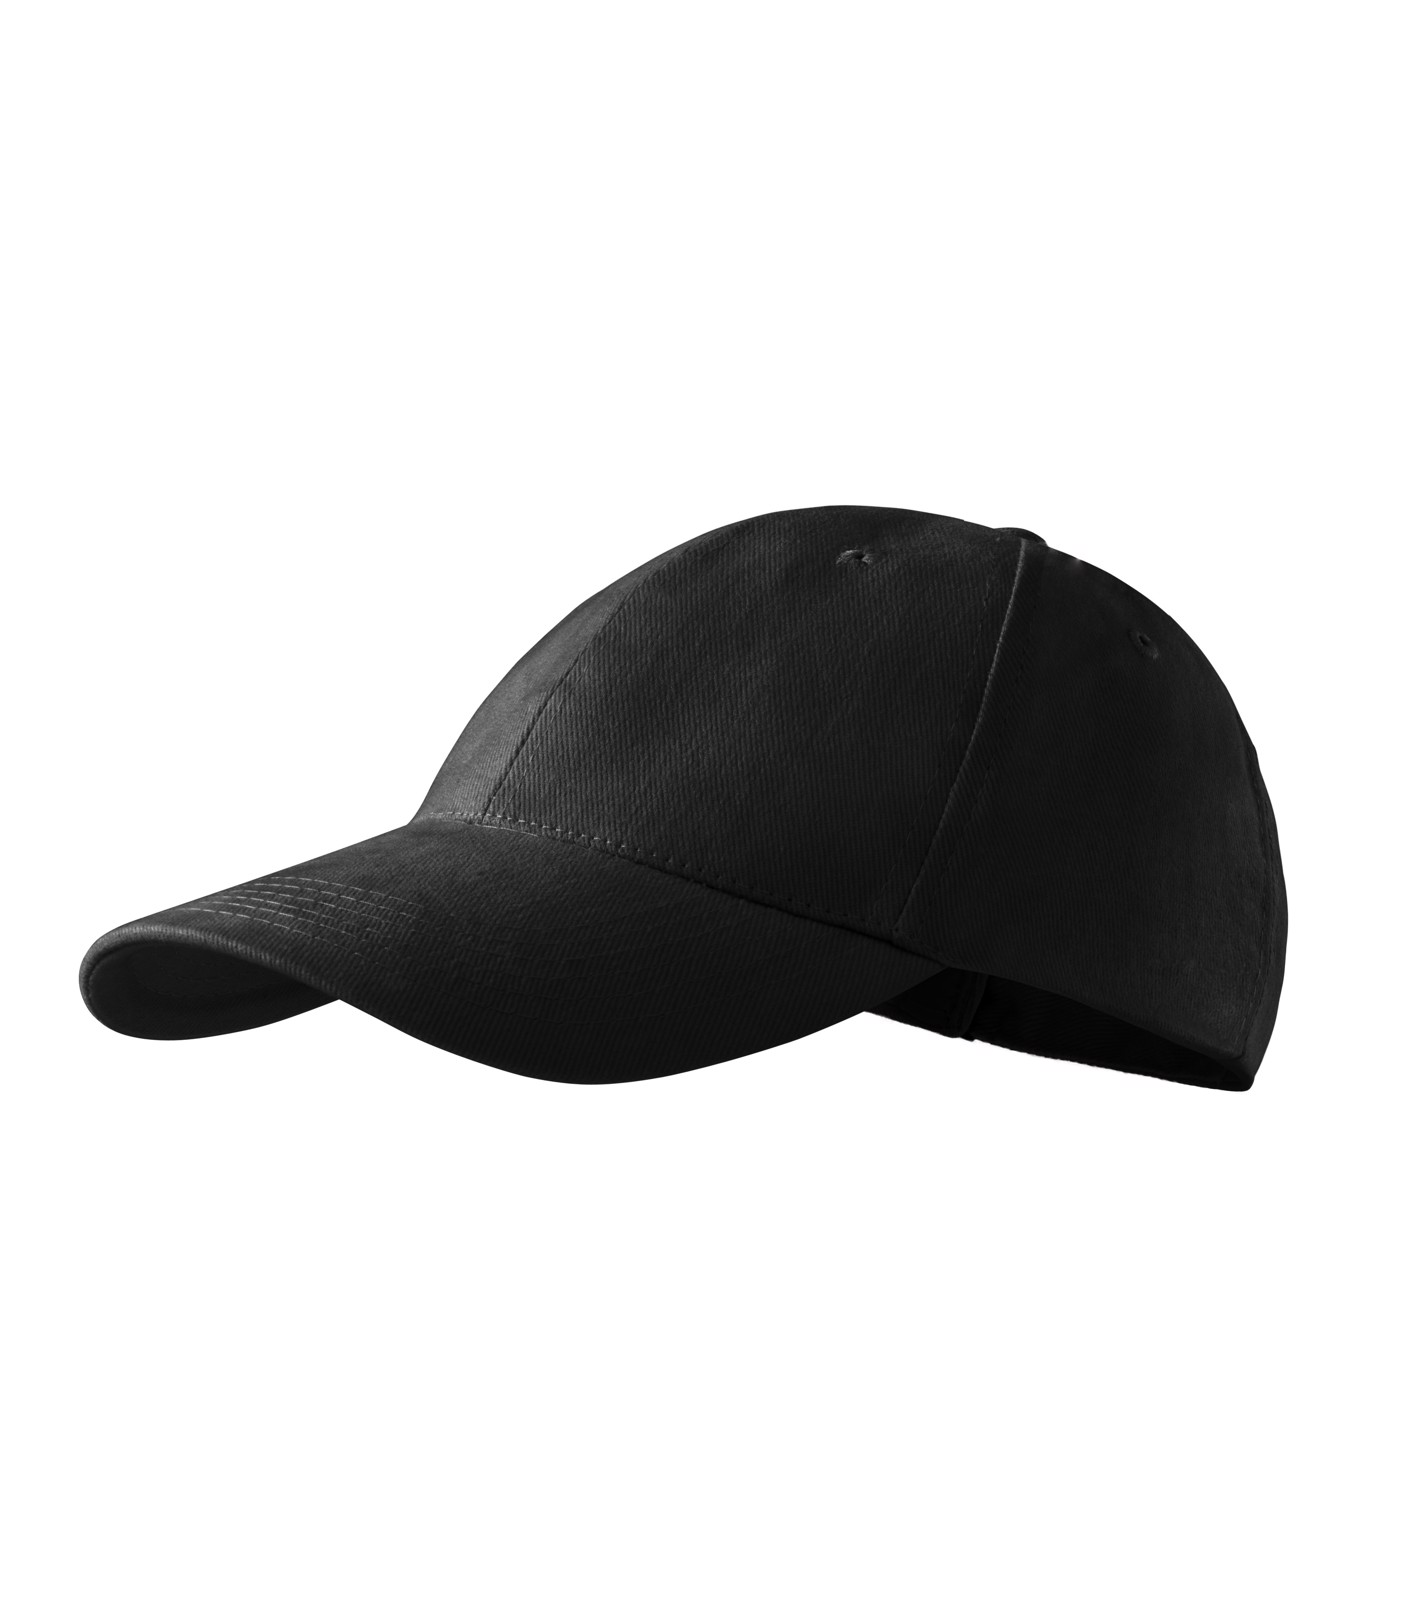 Cap unisex Malfini 6P - Black / adjustable